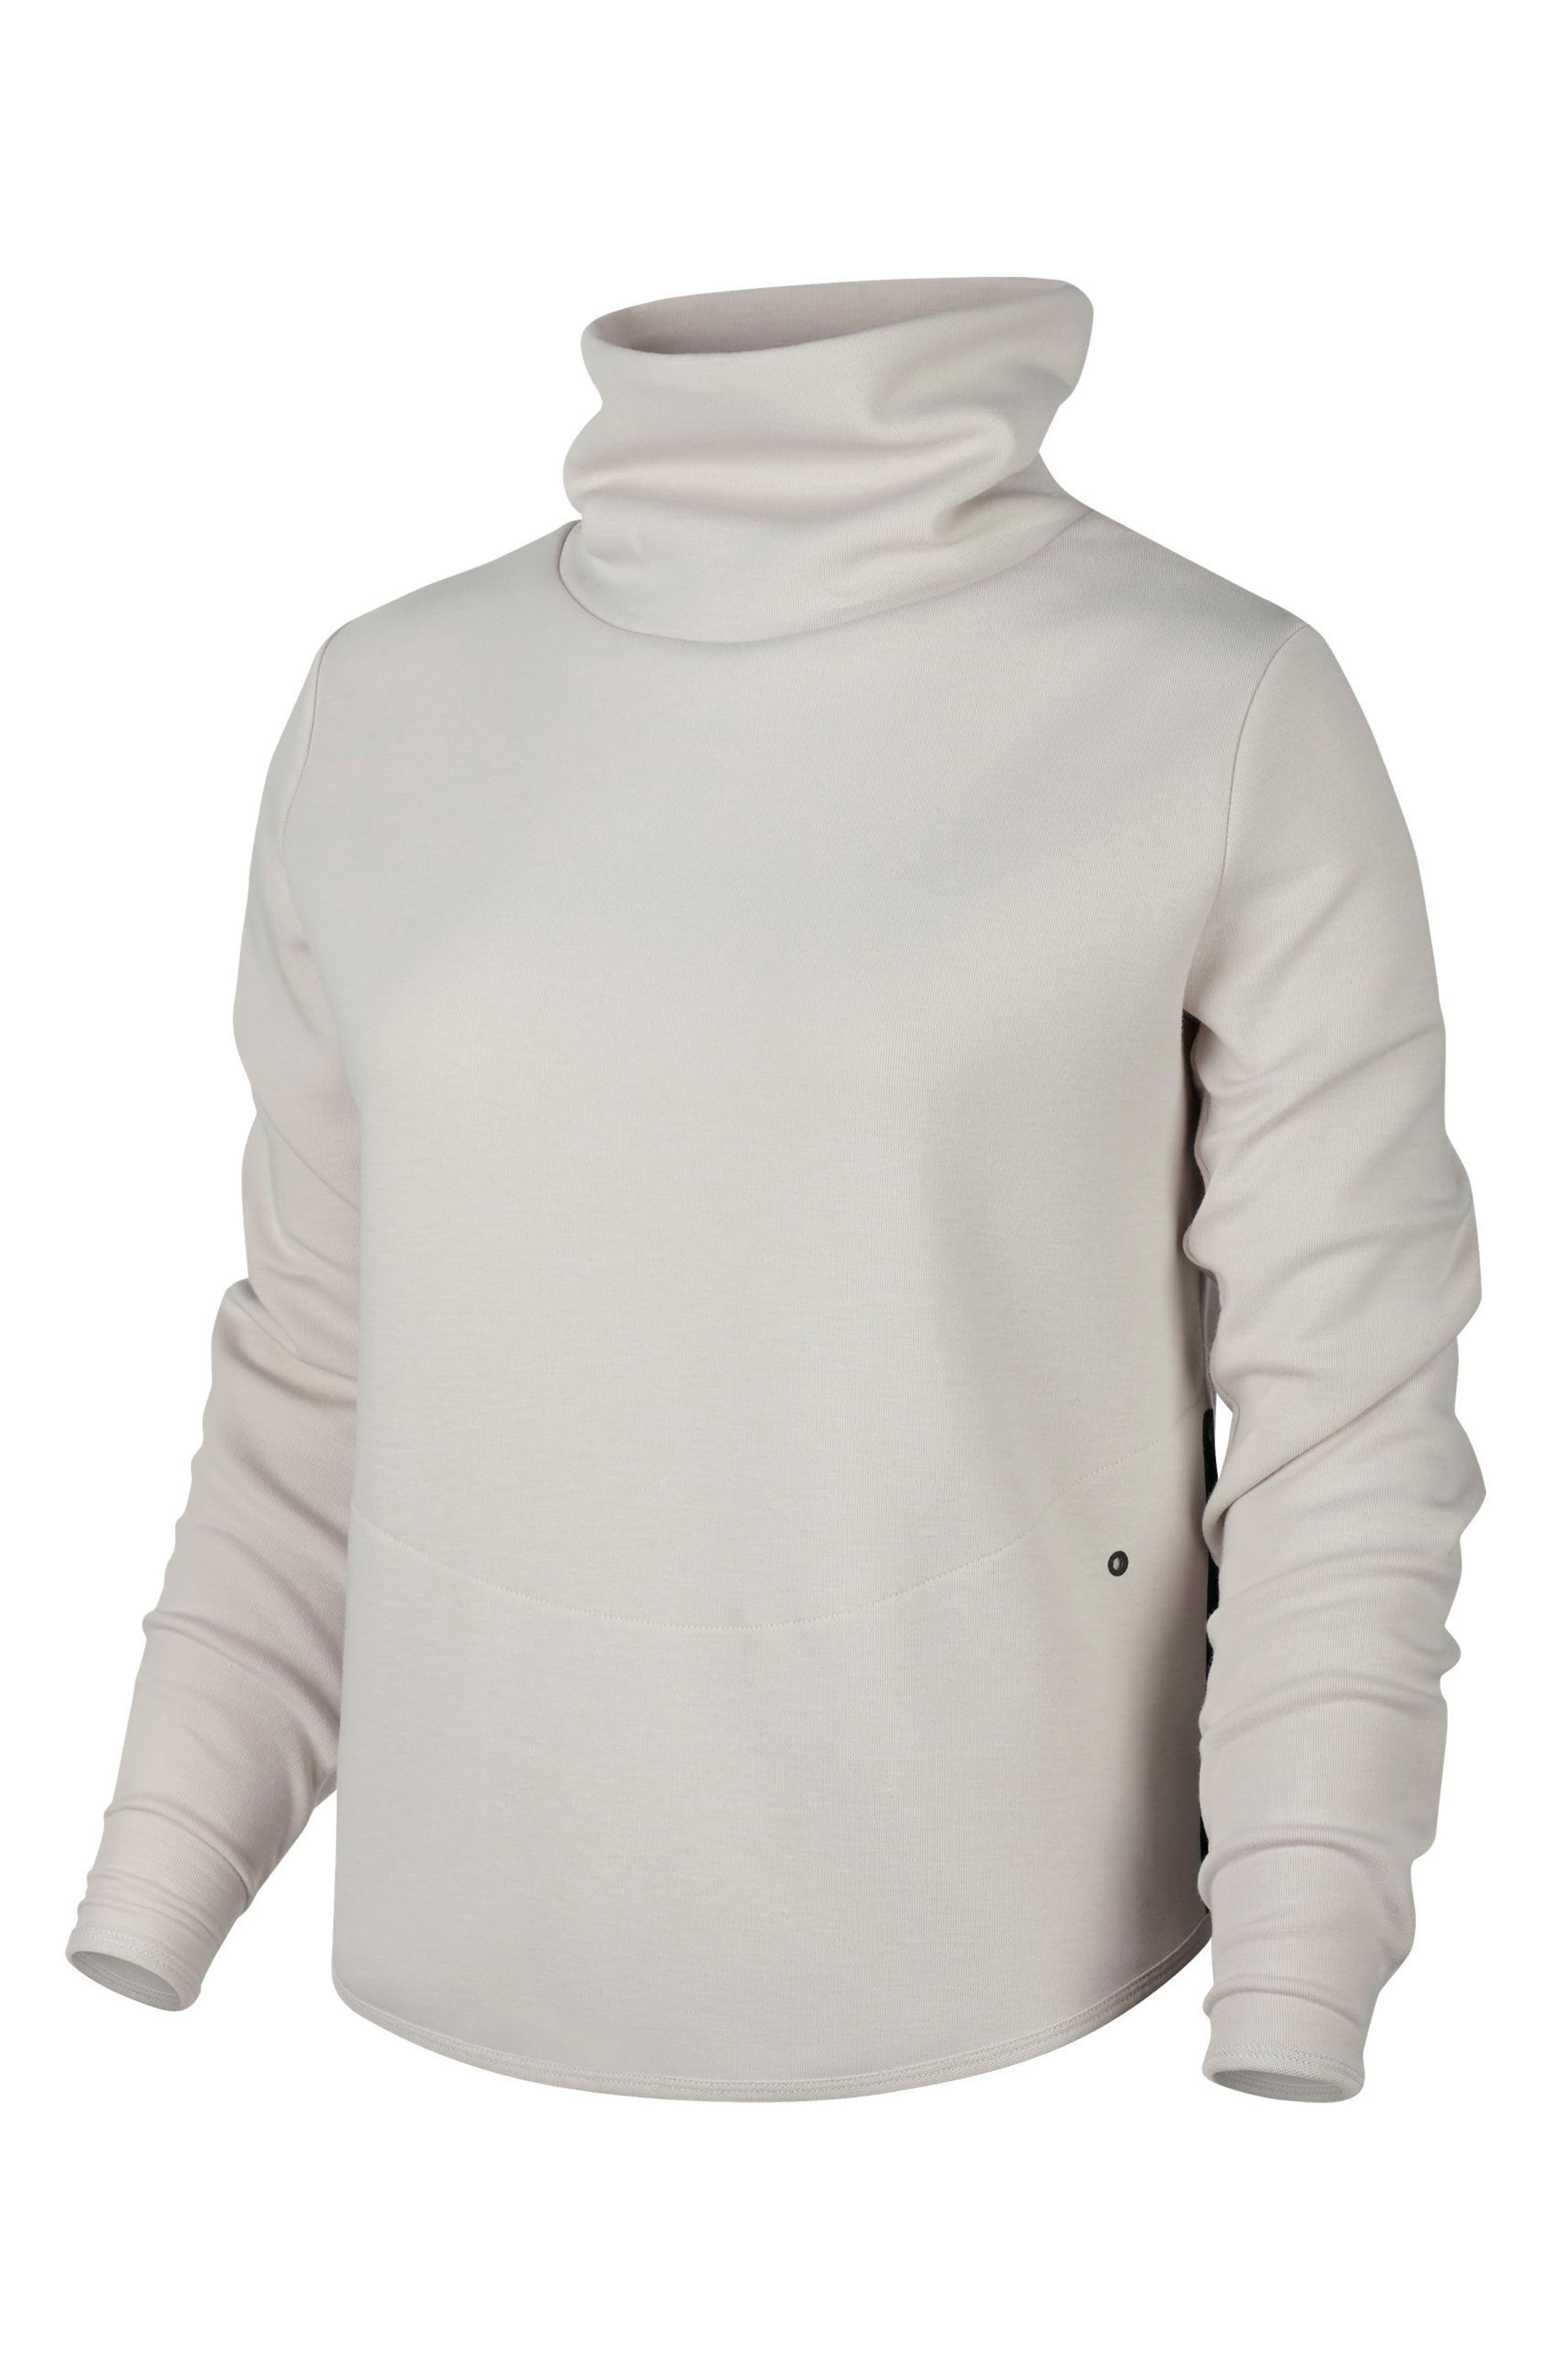 Women's Thermal Pullover Training Top,                         Main,                         color, 102